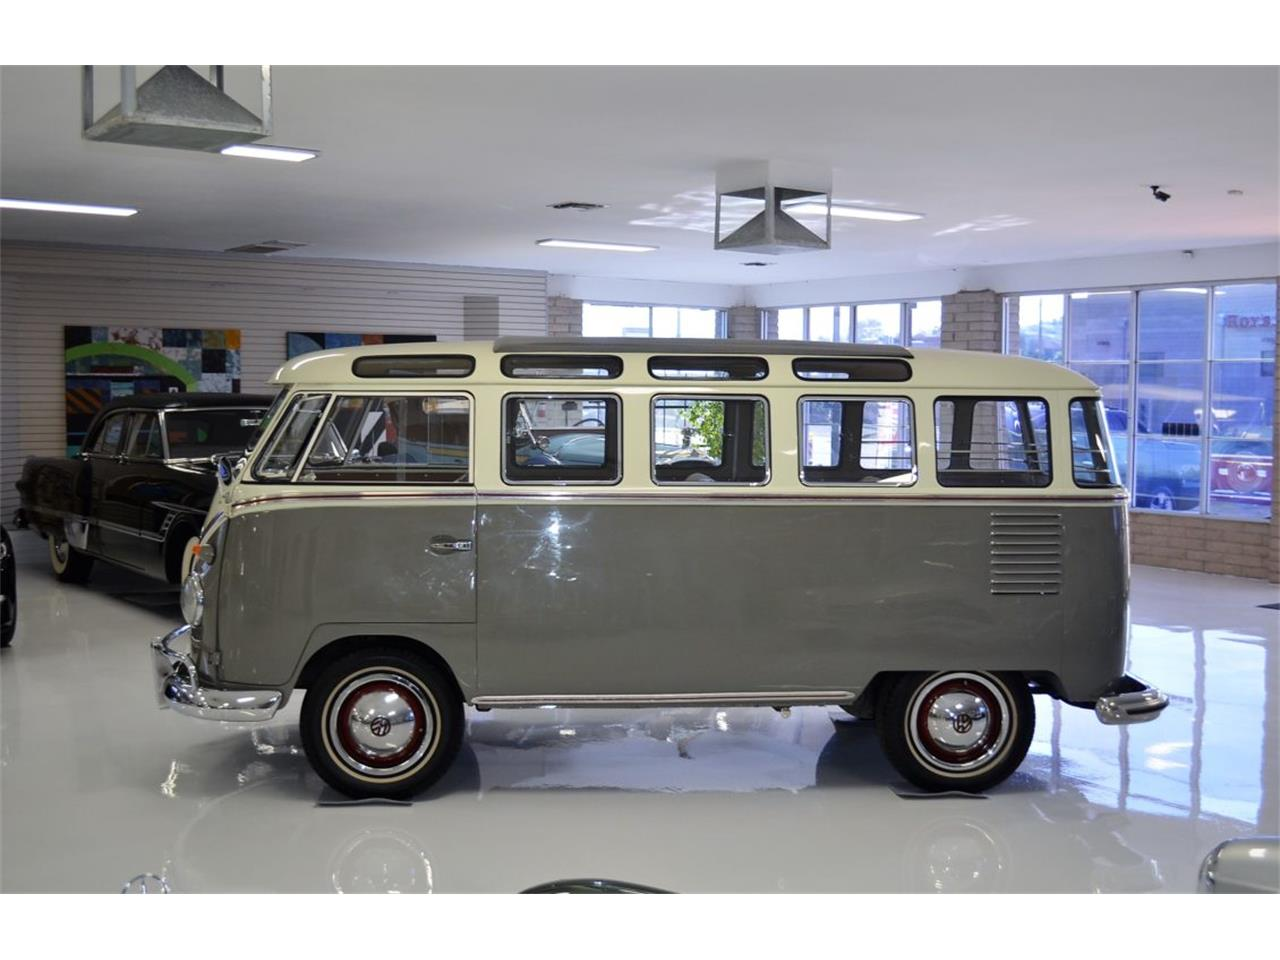 Vw Microbus For Sale >> 1958 Volkswagen Microbus For Sale In Phoenix Az